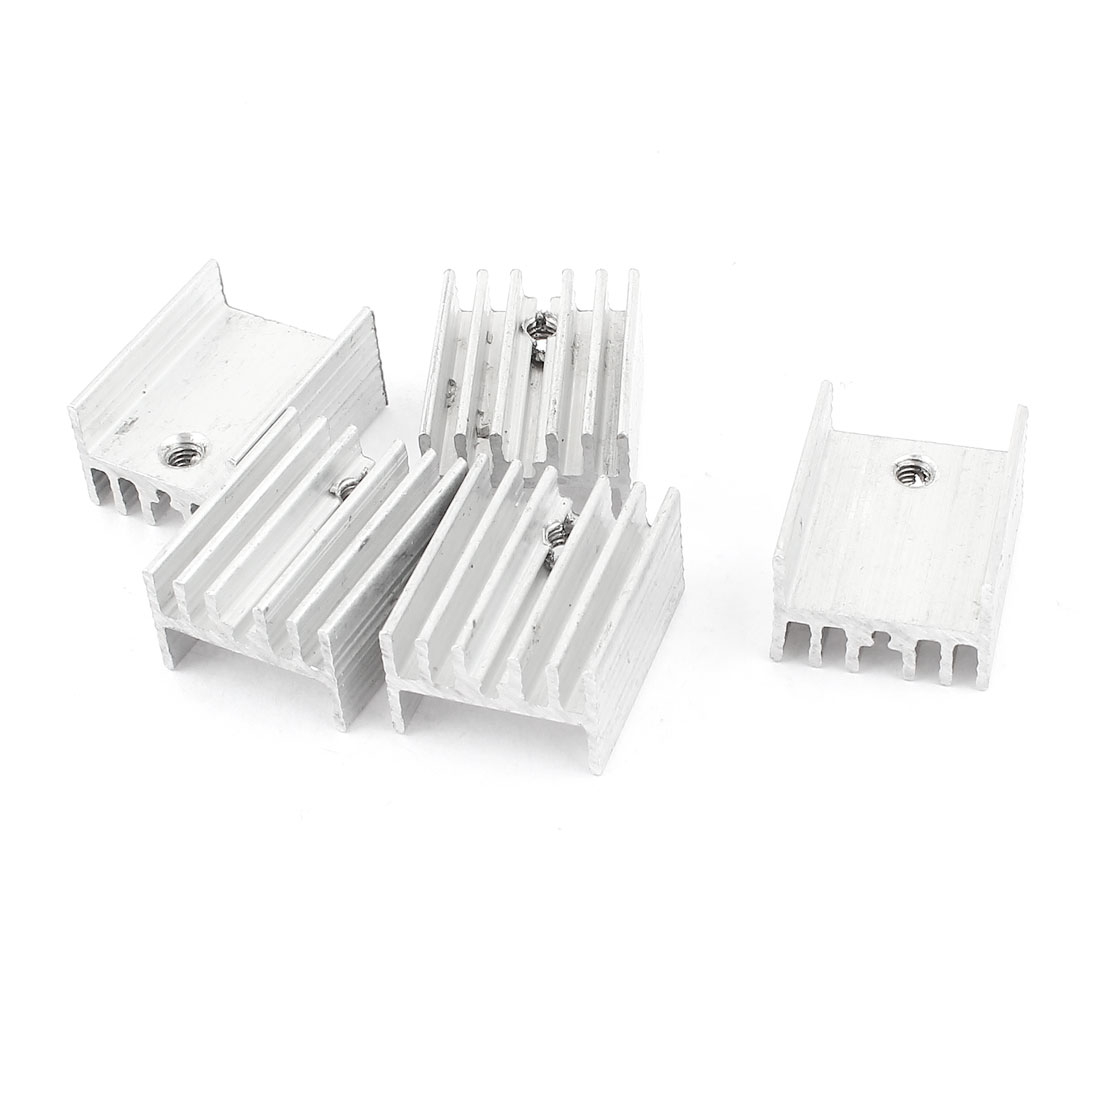 5 Pcs Silver Tone Aluminum Heat Sink 19x15x10mm for TO-220 Transistors